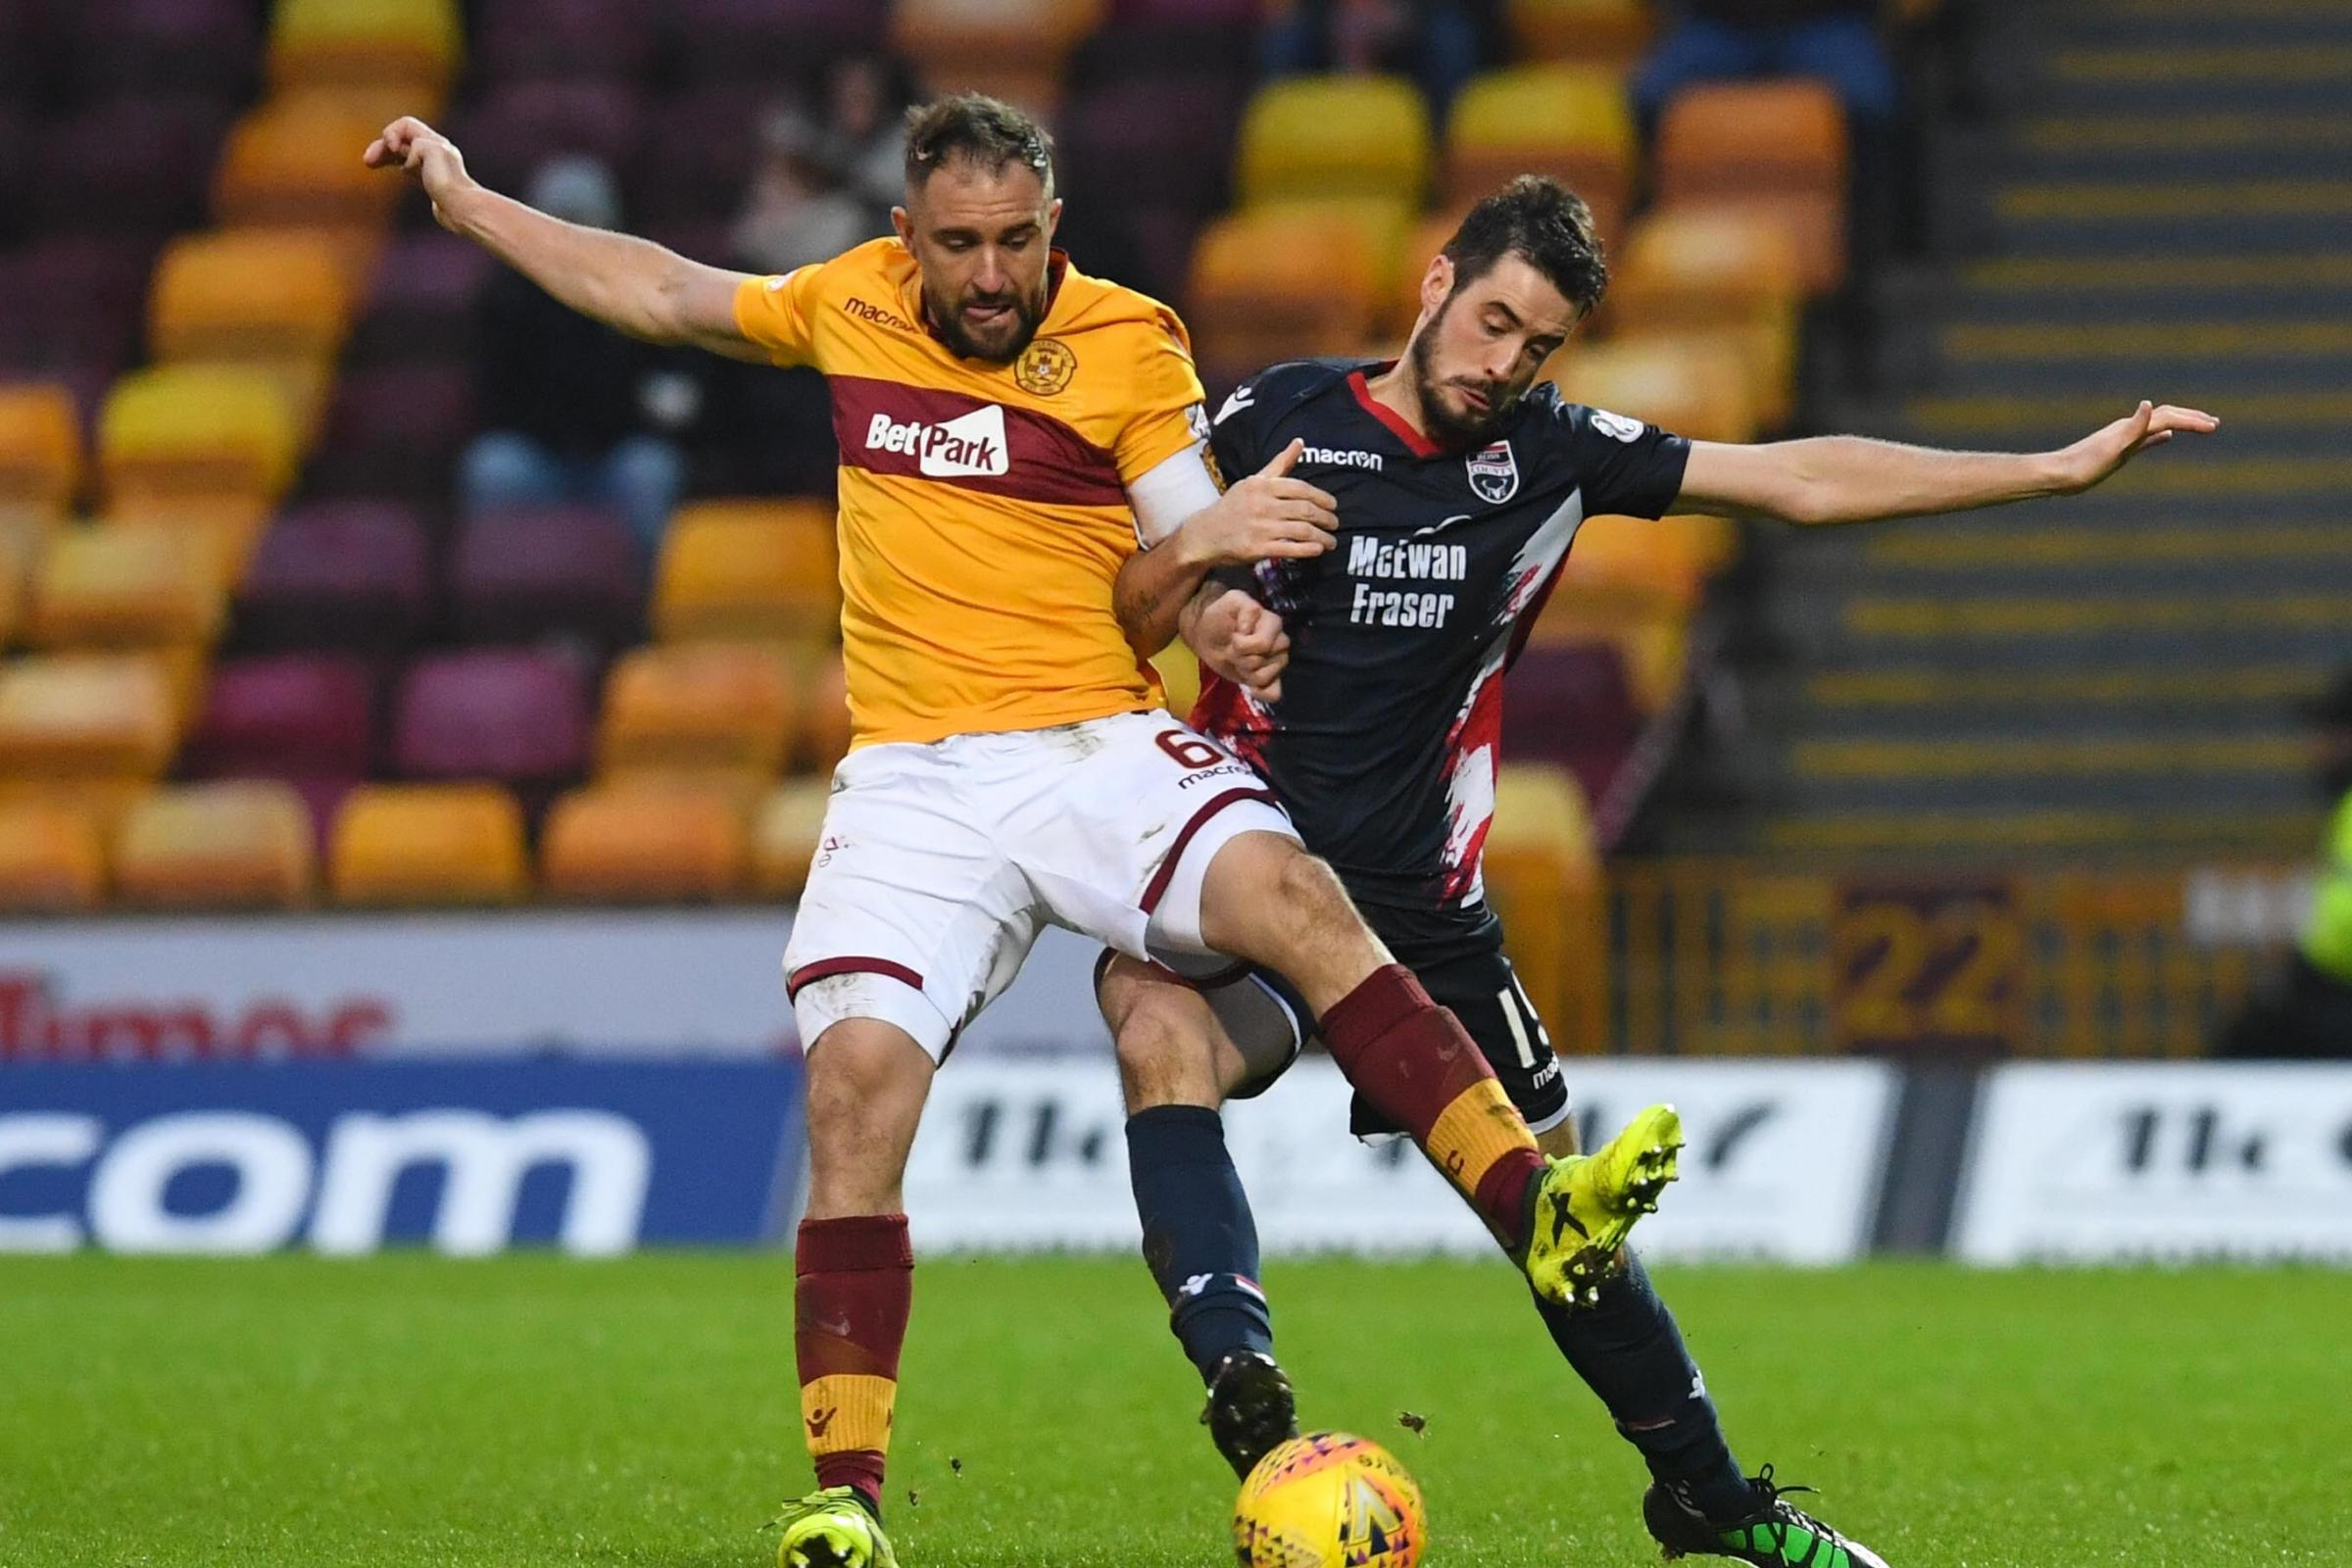 Motherwell 1 Ross County 2: Hampden a fading memory for Steelmen as County deservedly dump them out